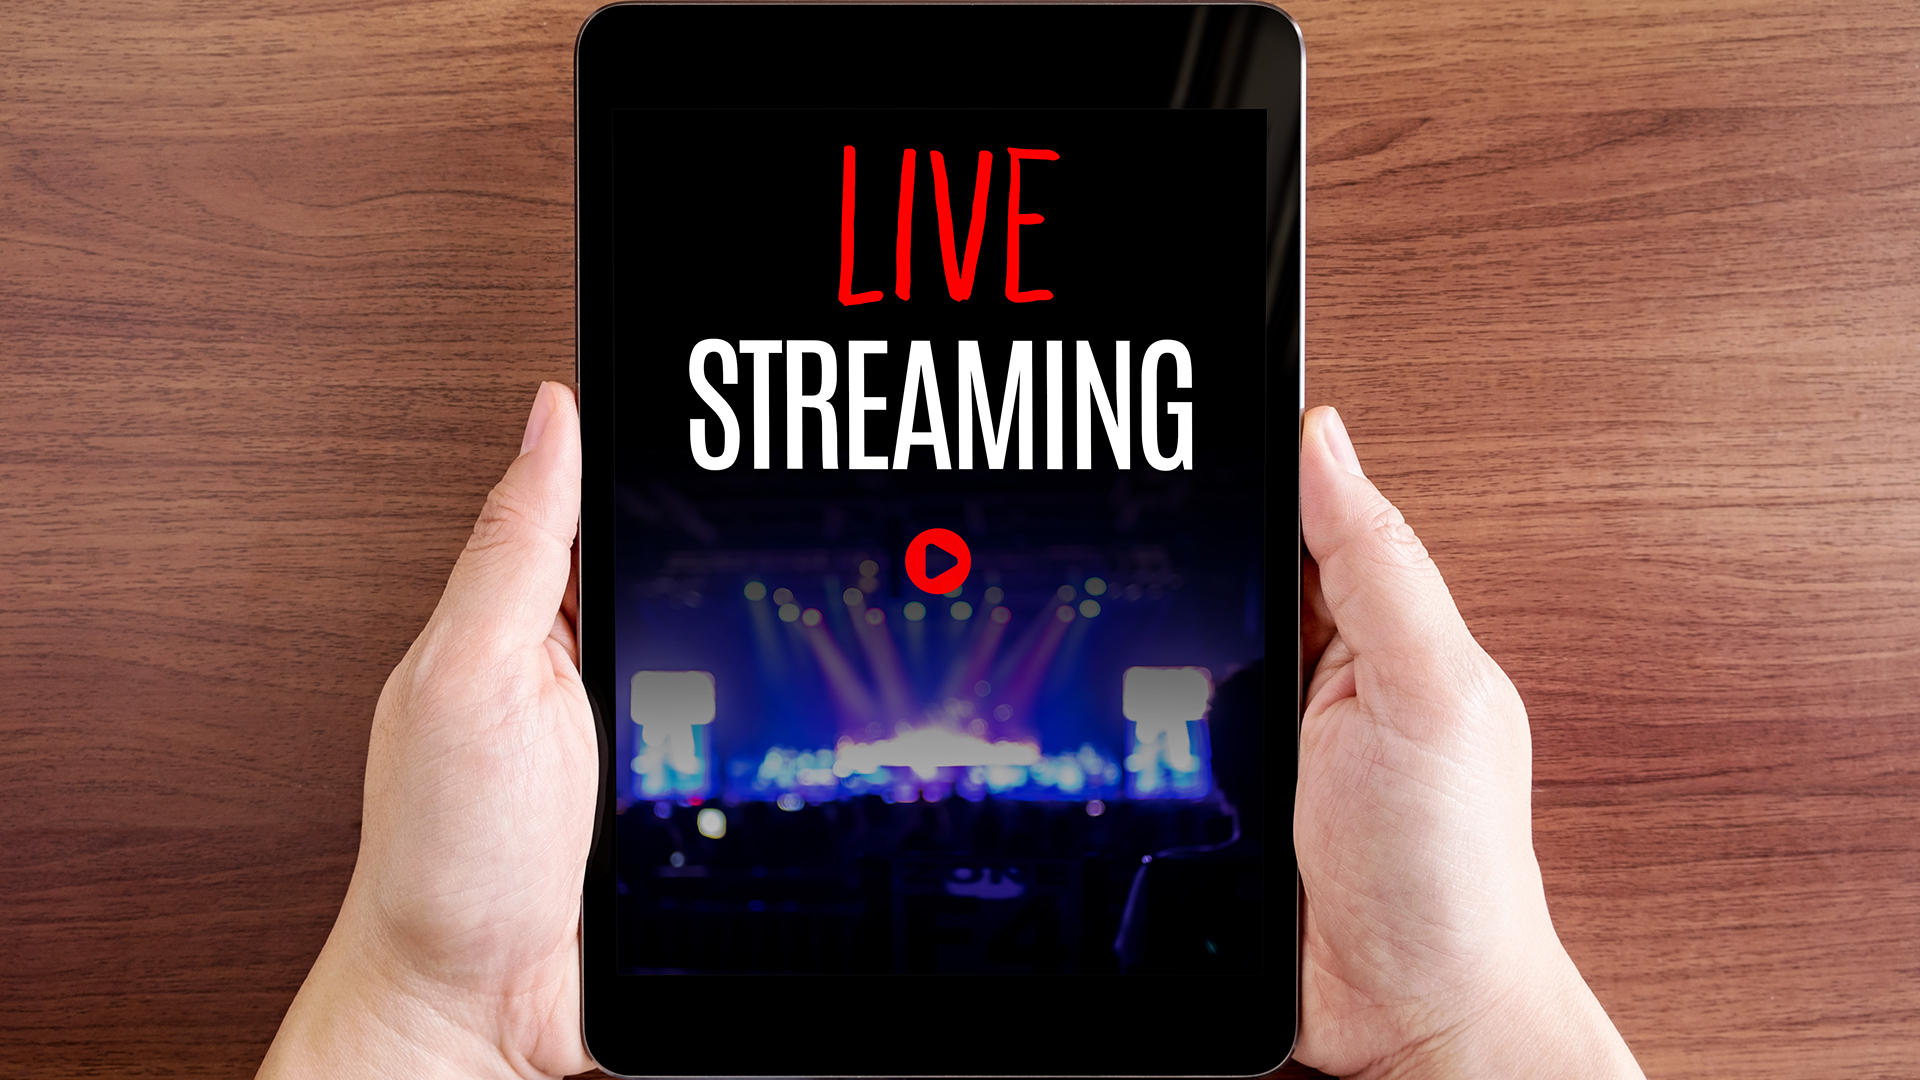 digital-signage_streaming_now-live